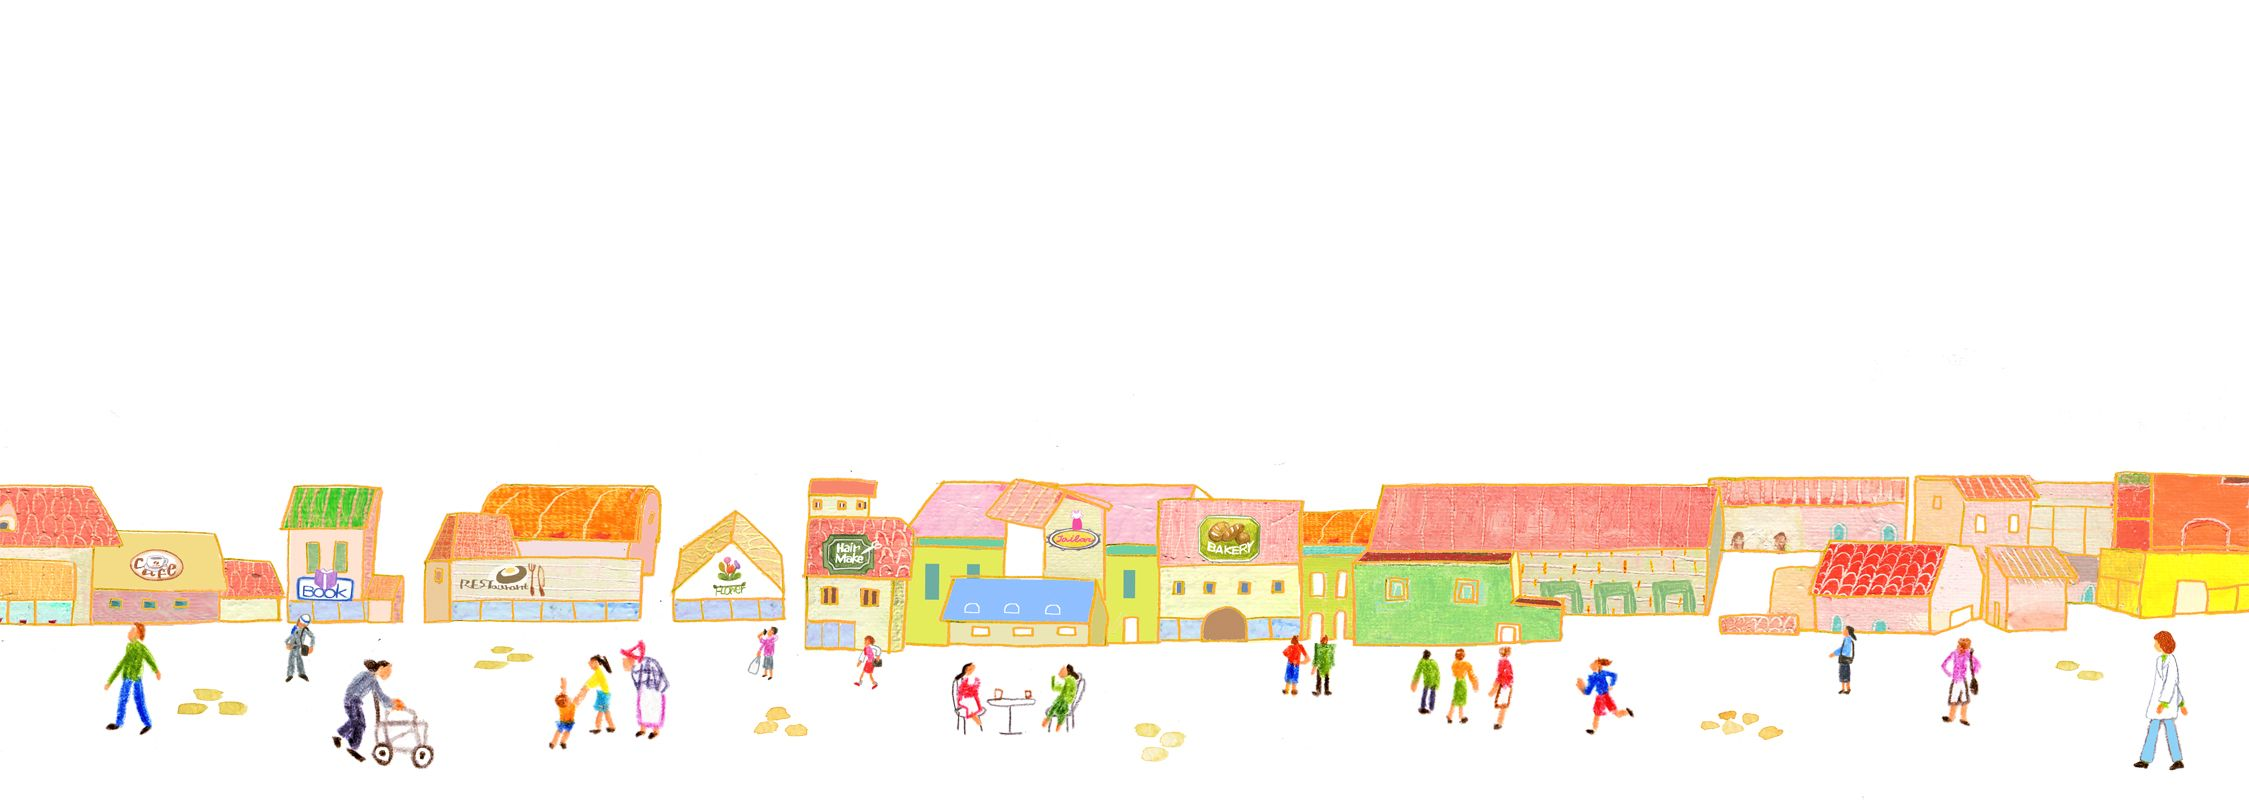 City Town Person Cute House Illustration 街 町 人 かわいい 家 イラスト 藤島つとむ イラスト 街 イラスト イラストレーション